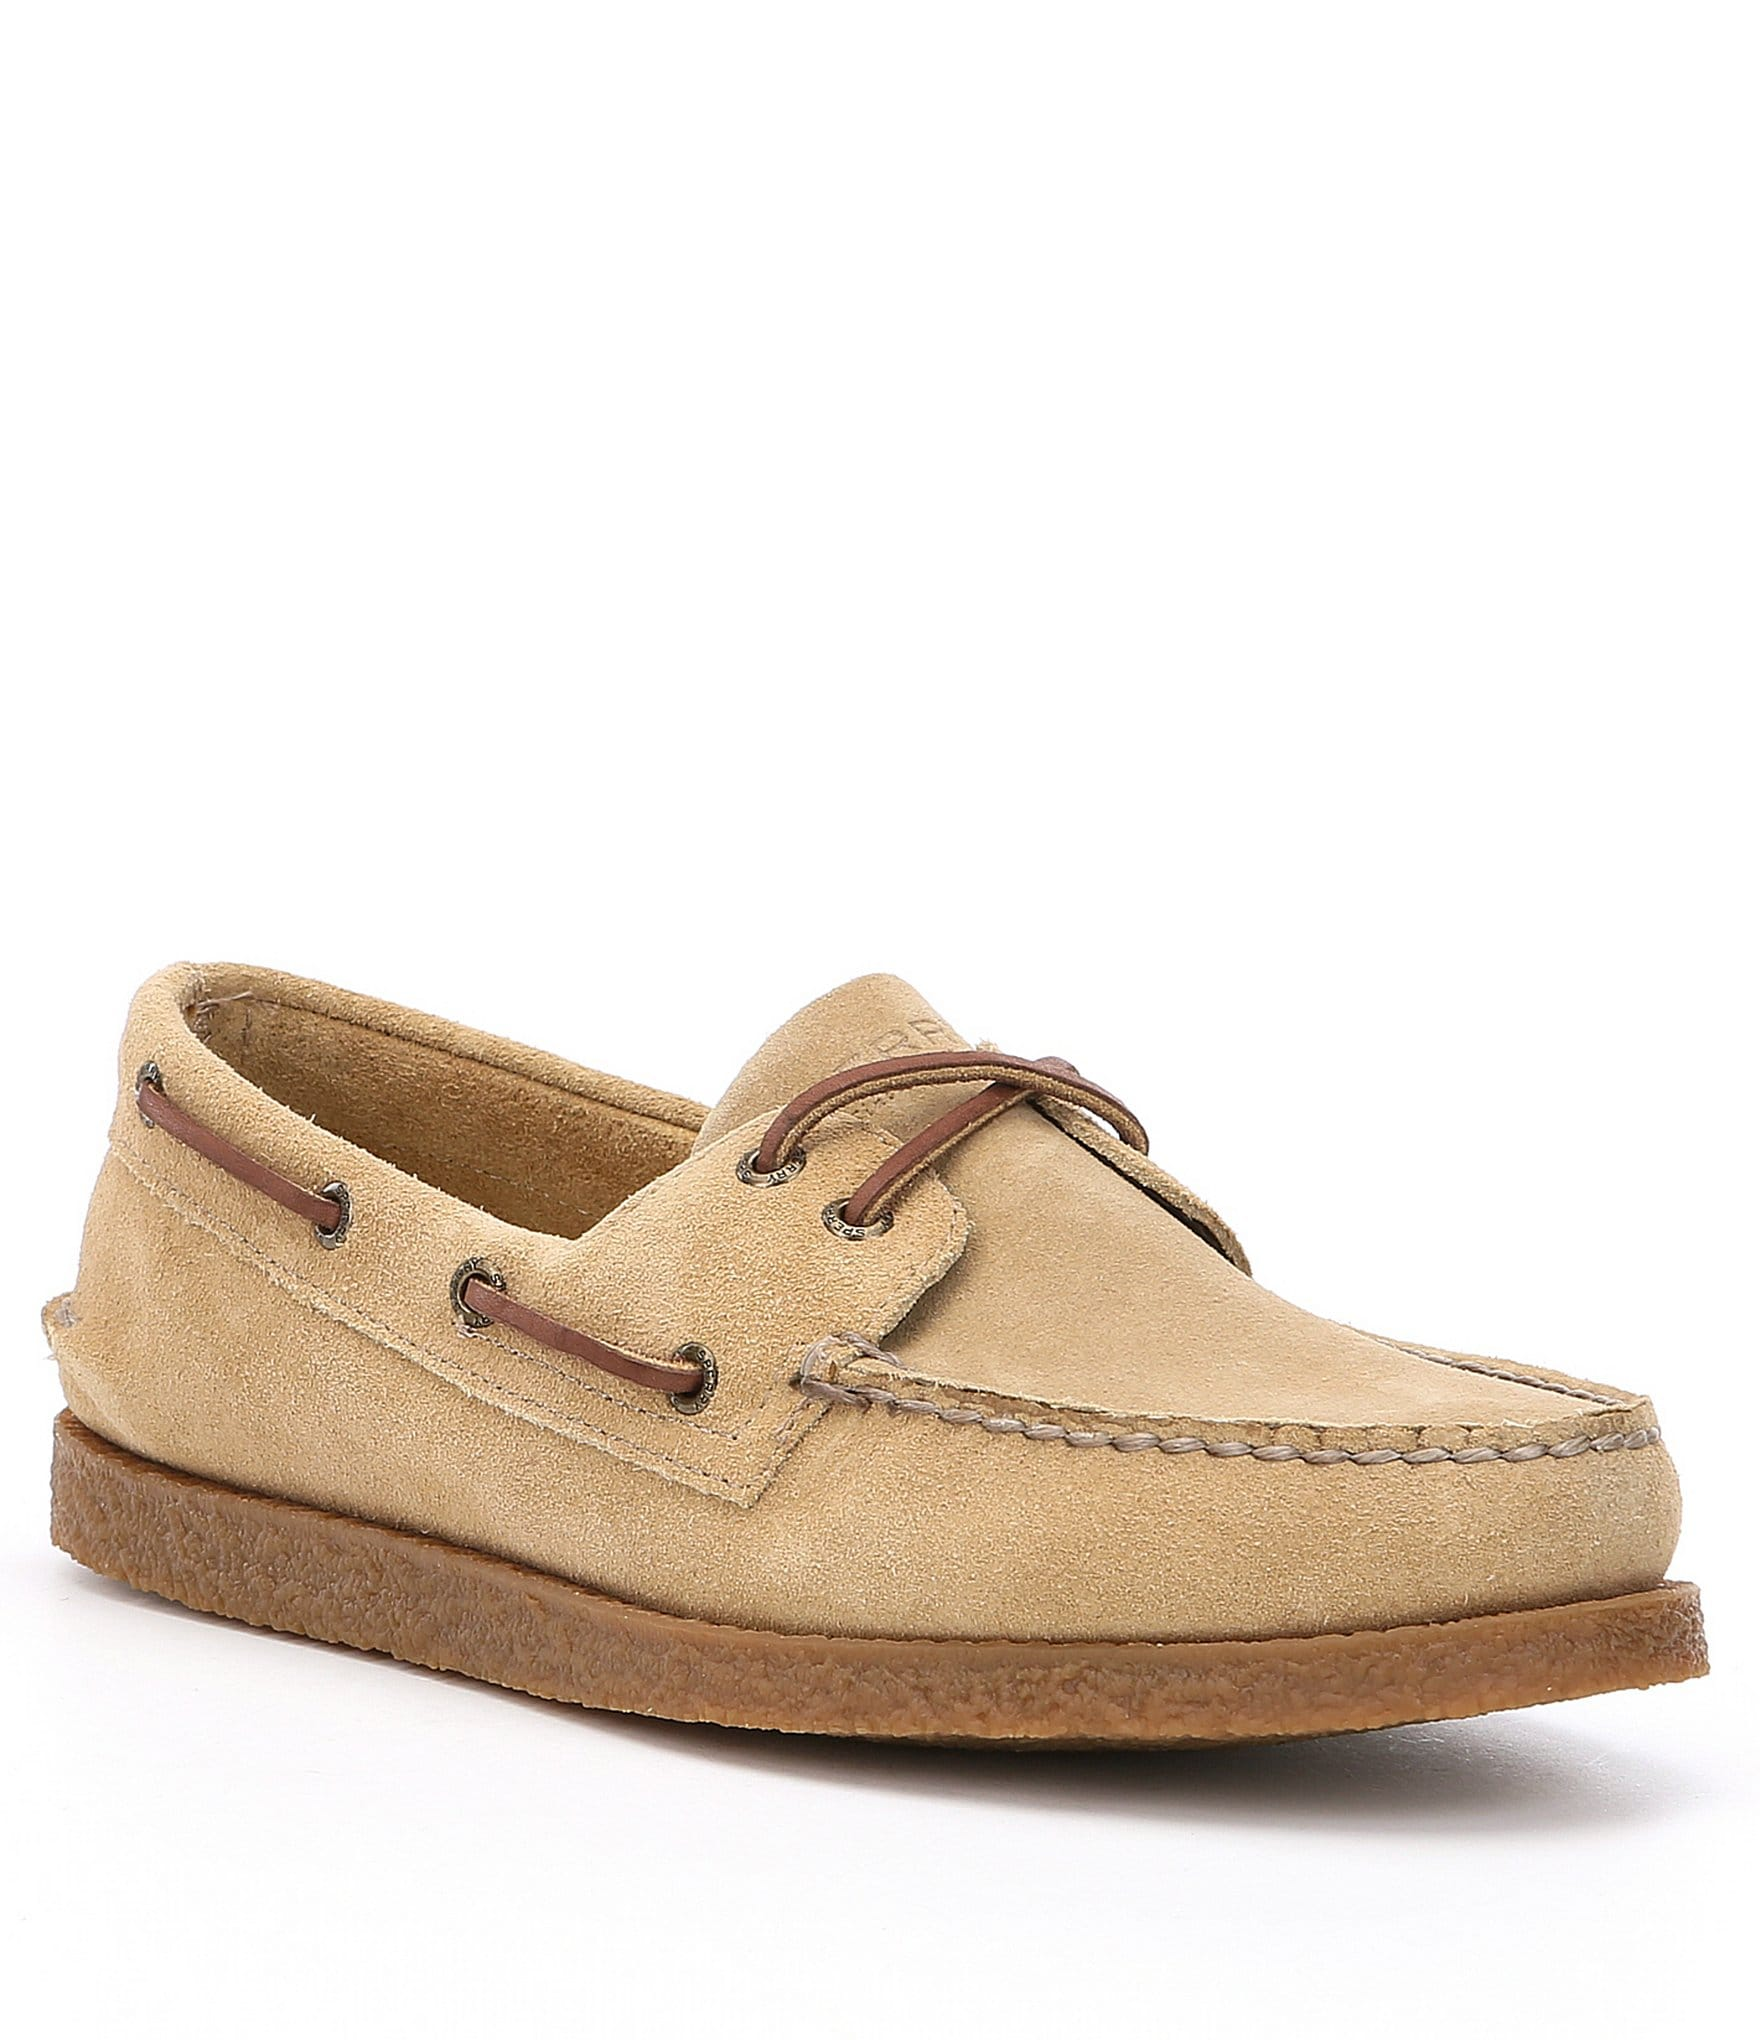 Suede Mens Boat Shoes Sale: Save Up to 30% Off! Shop jwl-network.ga's huge selection of Suede Boat Shoes for Men - Over 10 styles available. FREE Shipping & Exchanges, and a % price guarantee!